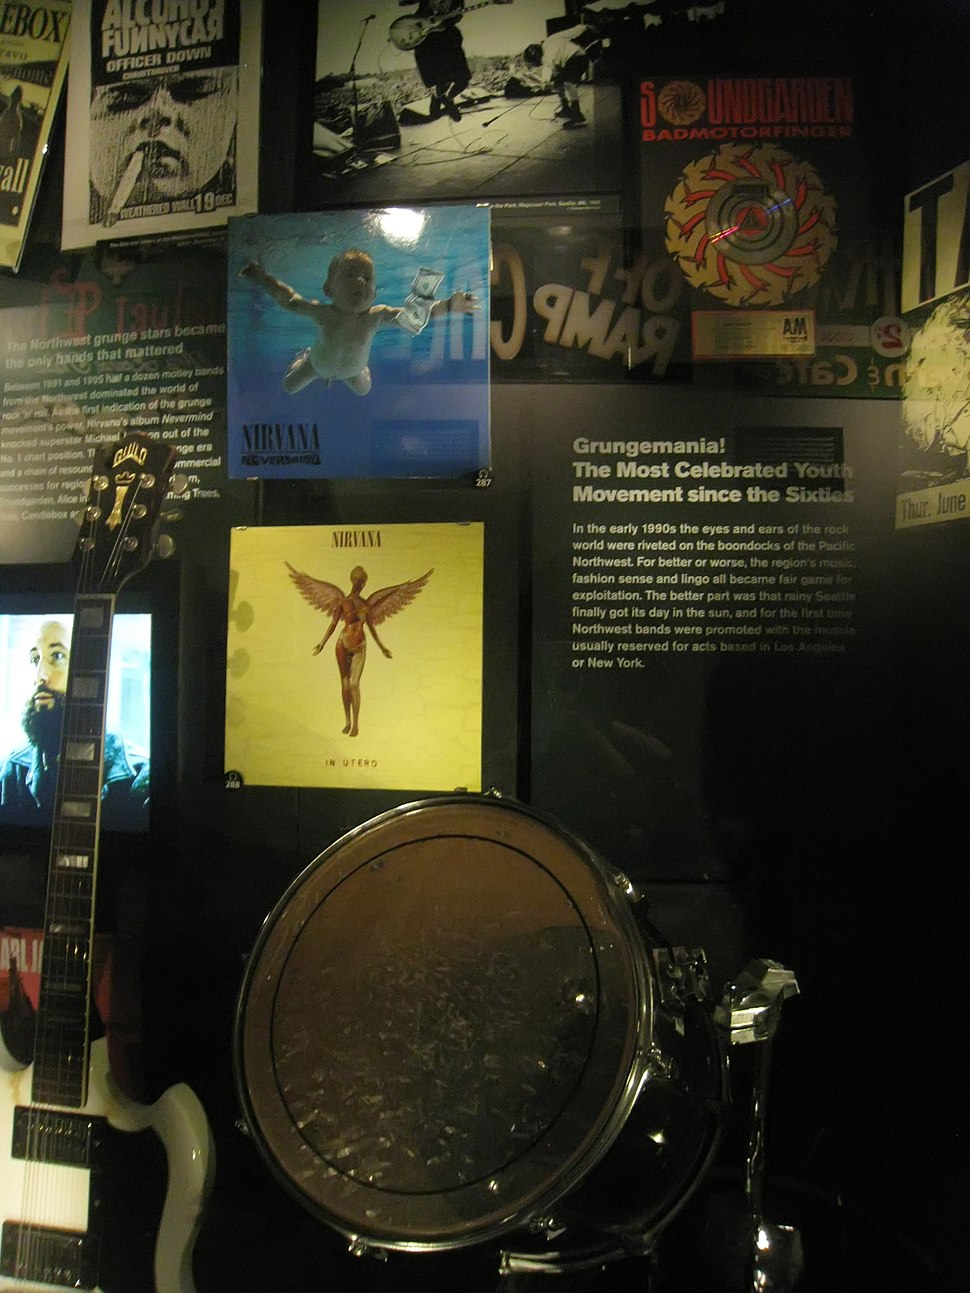 A museum exhibition of items associated with the 1990s Seattle music scene, including two Nirvana record album sleeves, a Soundgarden record sleeve, and instruments.